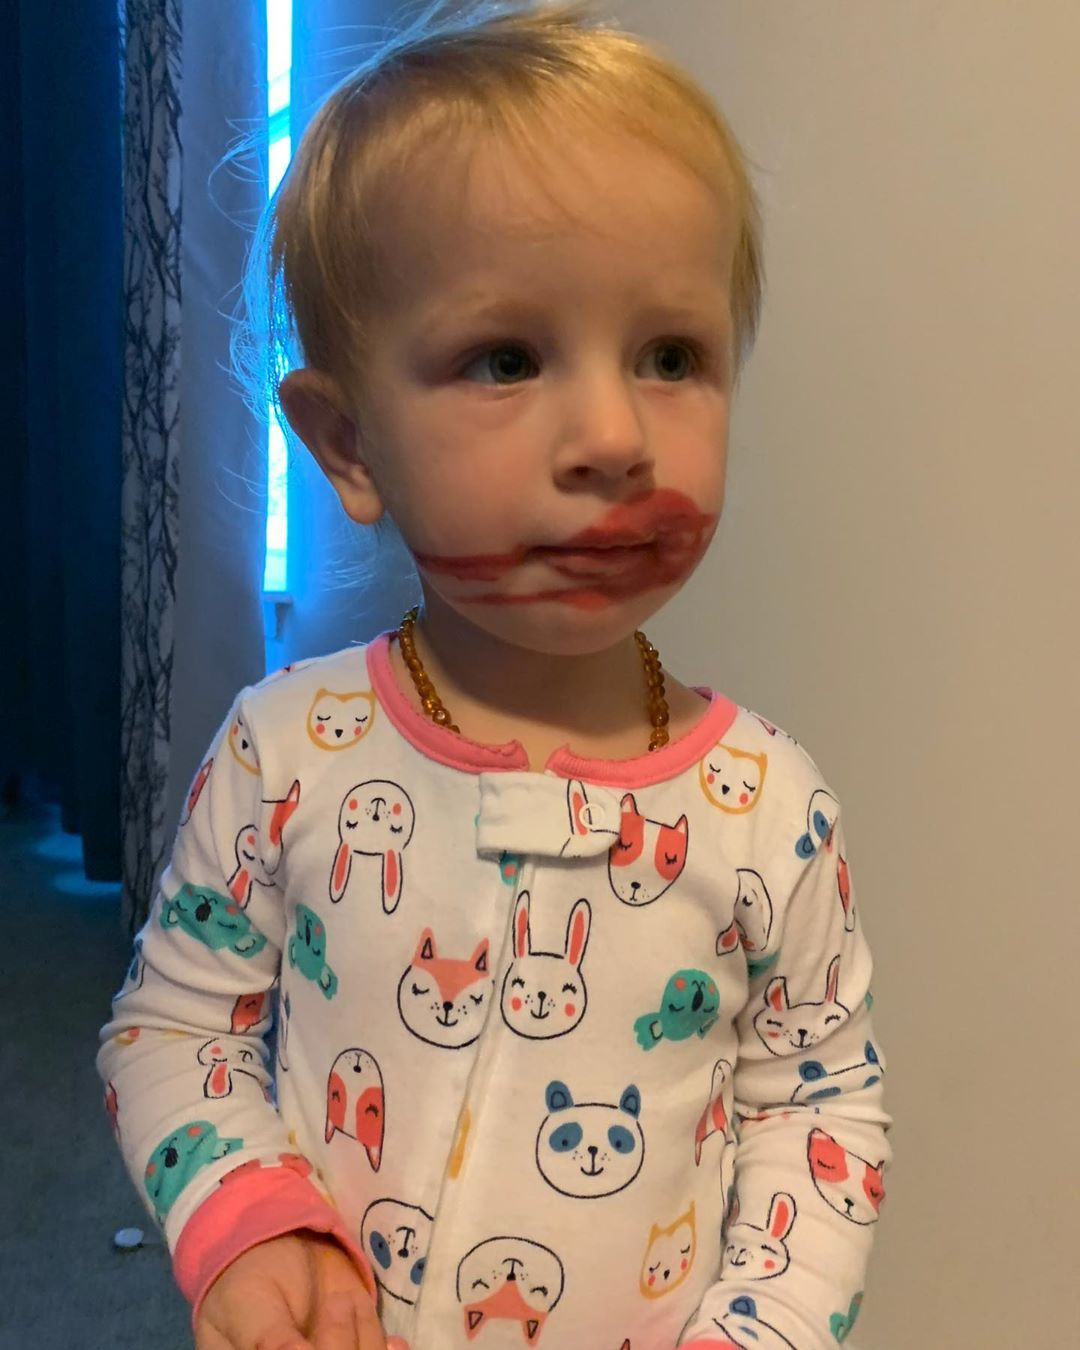 Oh child you make me laugh. 👄  • • • • #toddler#toddlerlife #toddlersofinstagram #toddlermomlife #toddlermom #toddlerfun #toddlers #toddlerhood #ohdear#surprise#lipstick#shethinksshesfunny#mydaughter#carters #cartersbaby #baby#babygirl#toddlergirl#cantlivewithouther#ohbaby